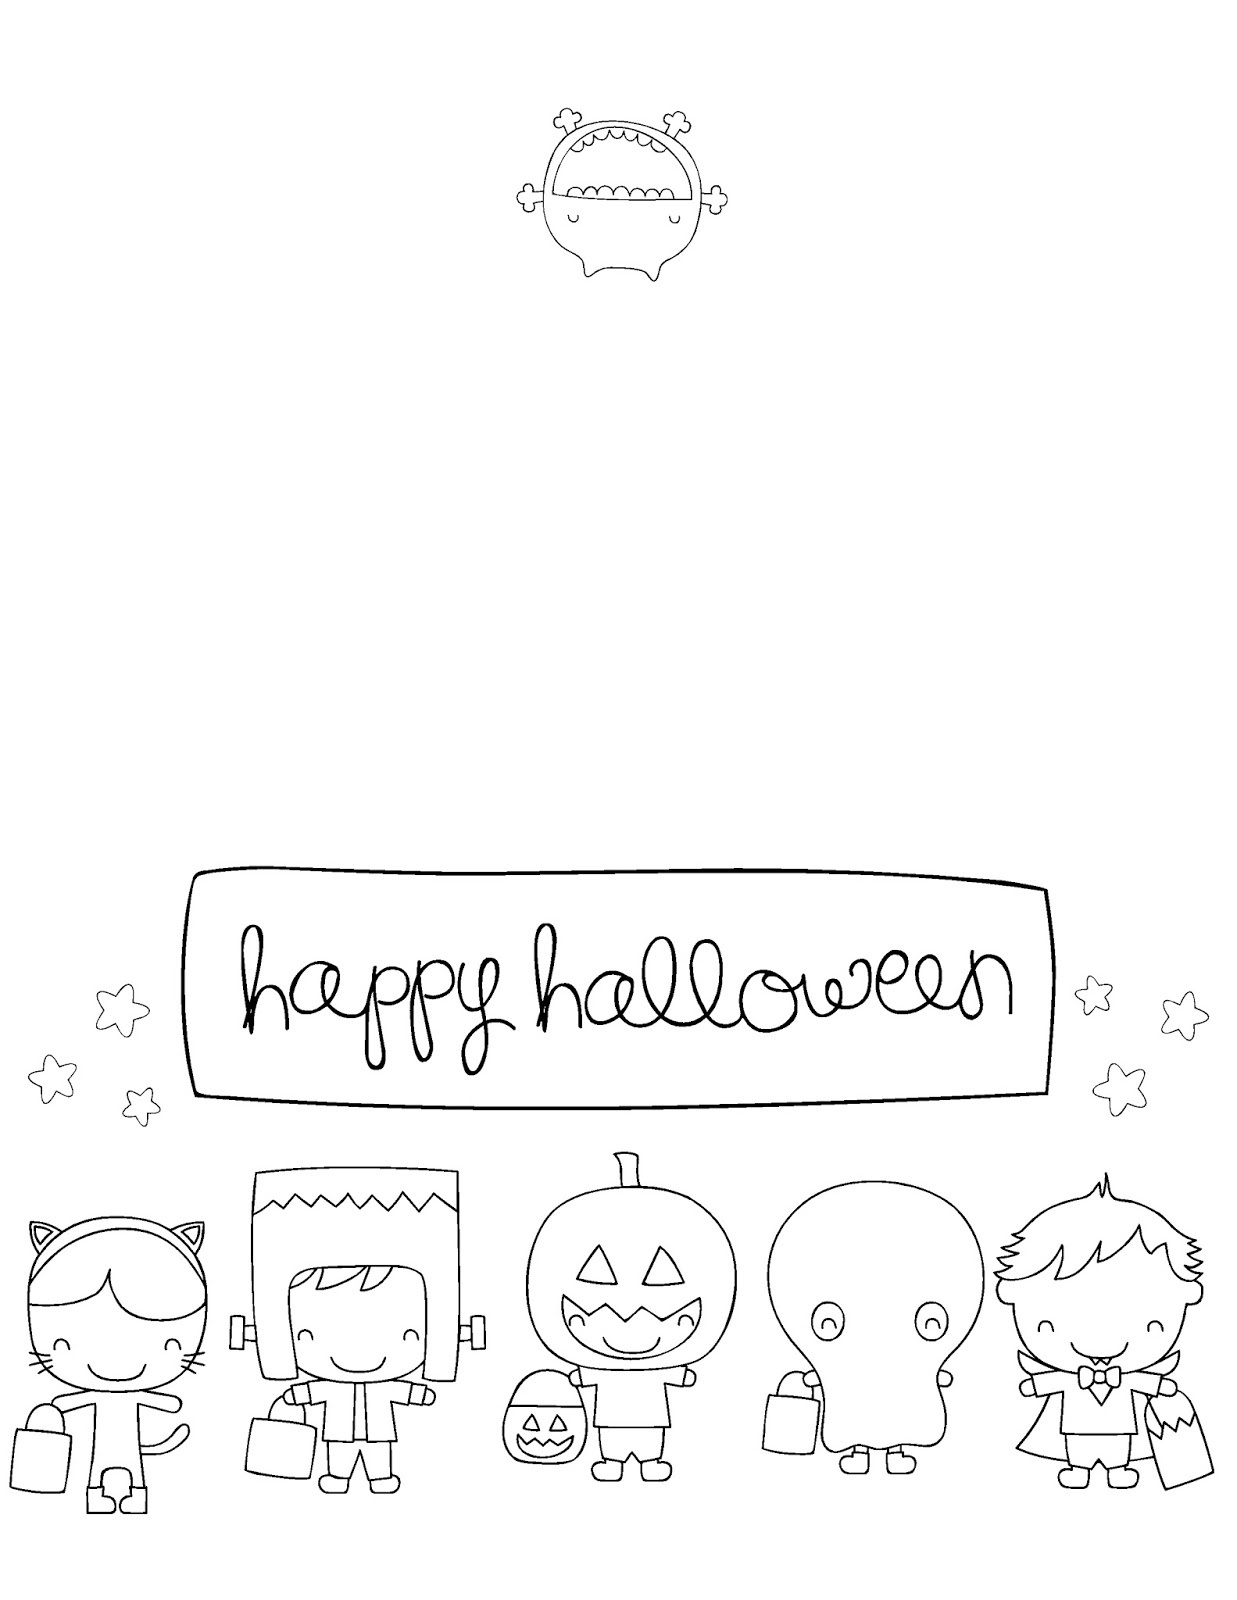 Printable Halloween Cards To Color - Smipvcu - Printable Halloween Cards To Color For Free